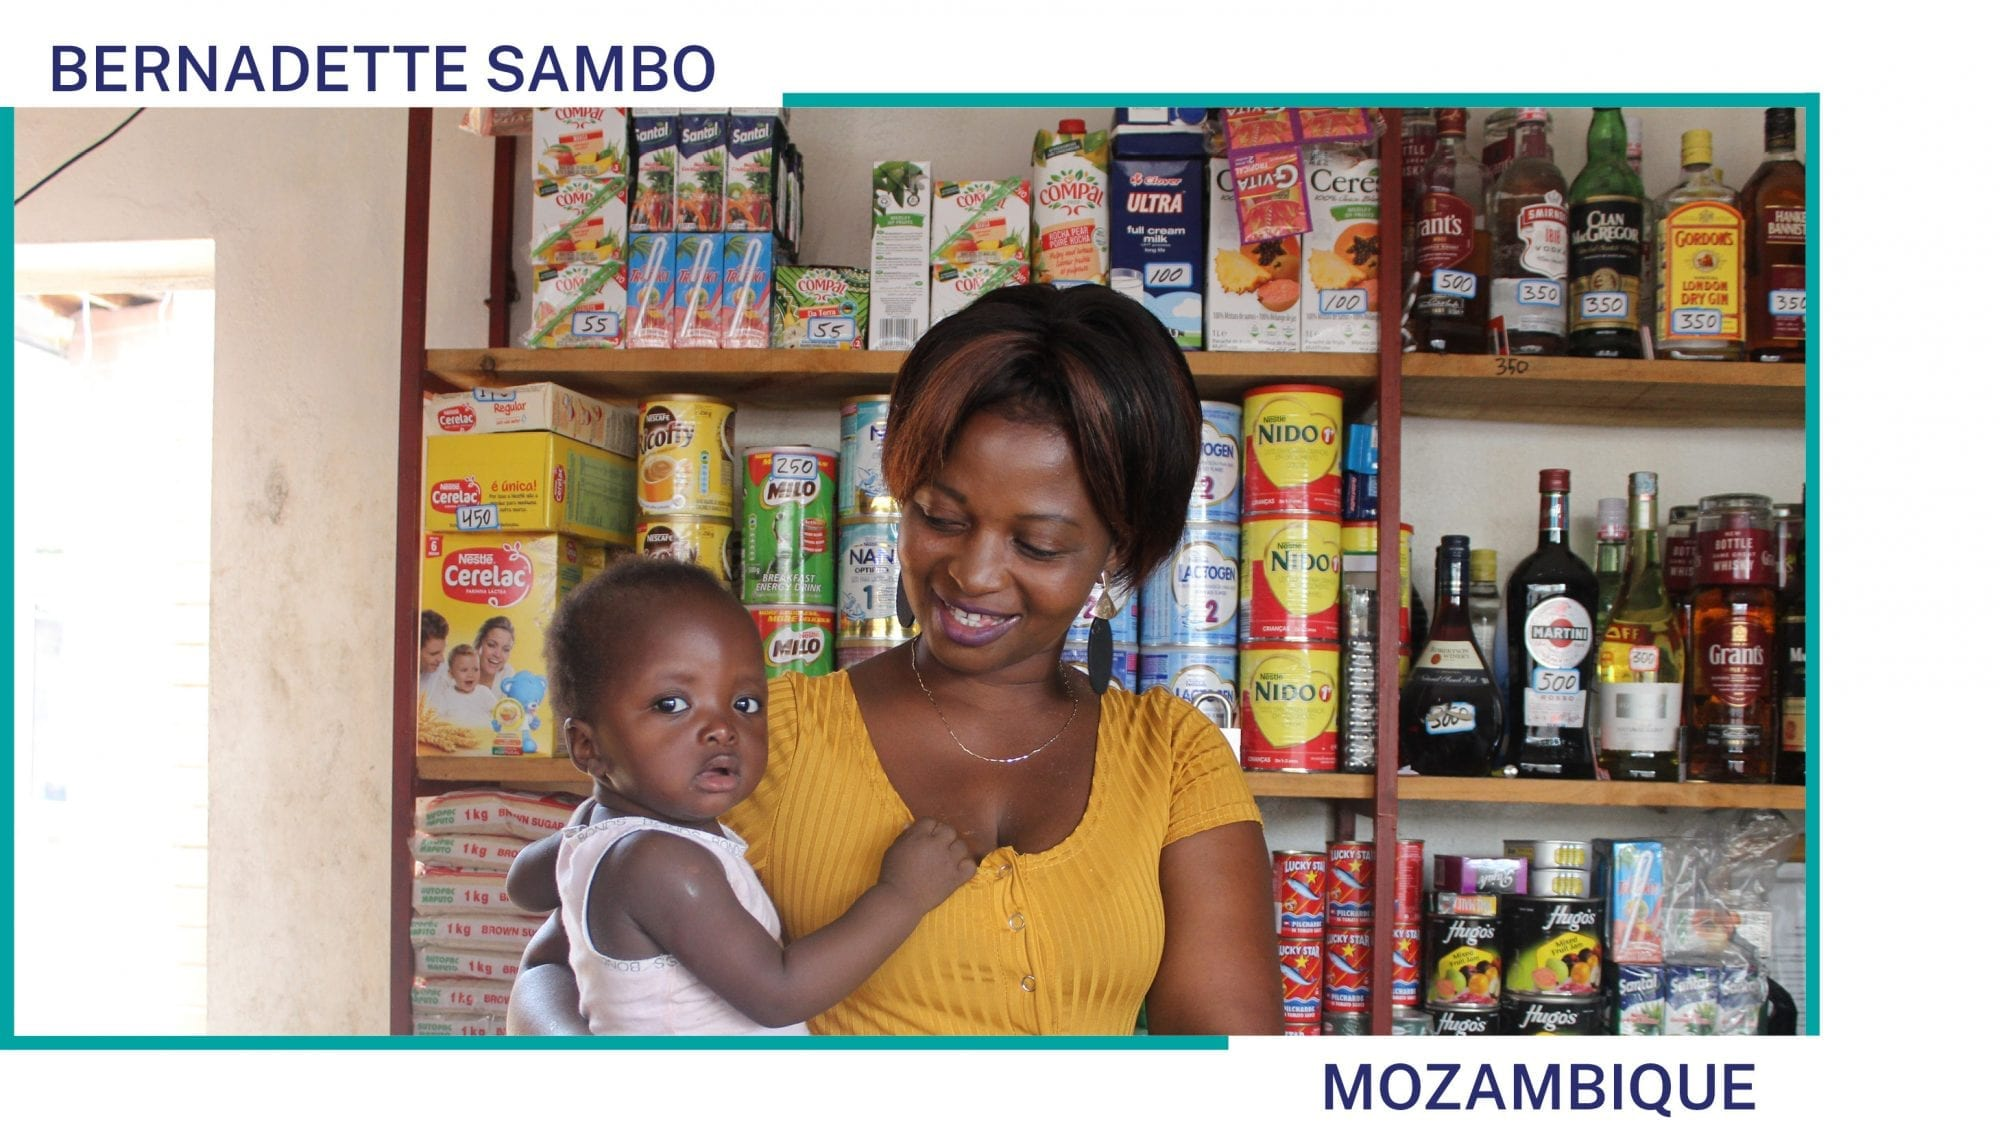 Bernadette Sambo holds her child in her shop in Mozambique